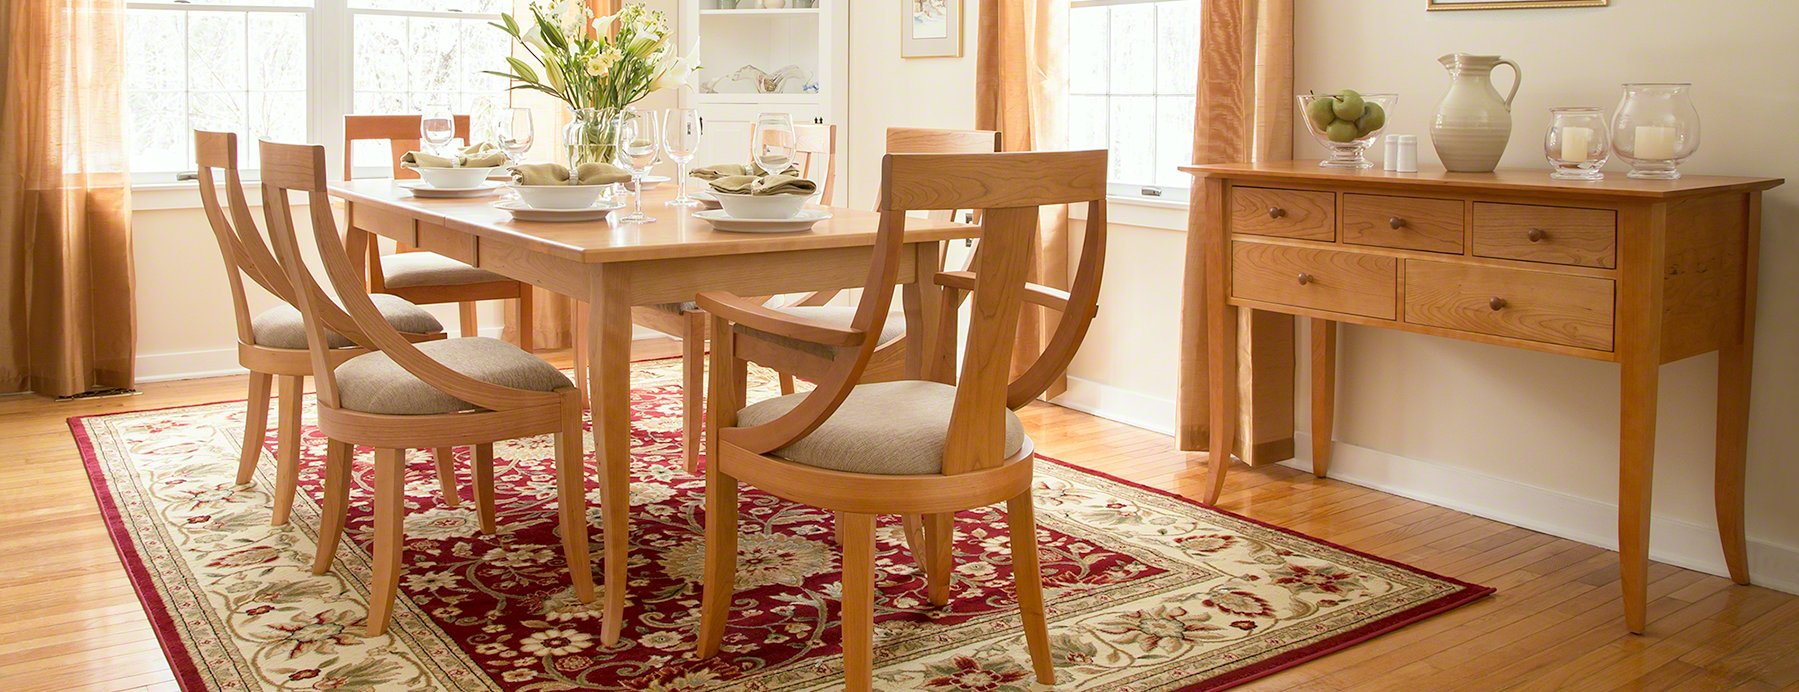 Quality Furniture And Wood Products Made In Vermont Vermont Wood